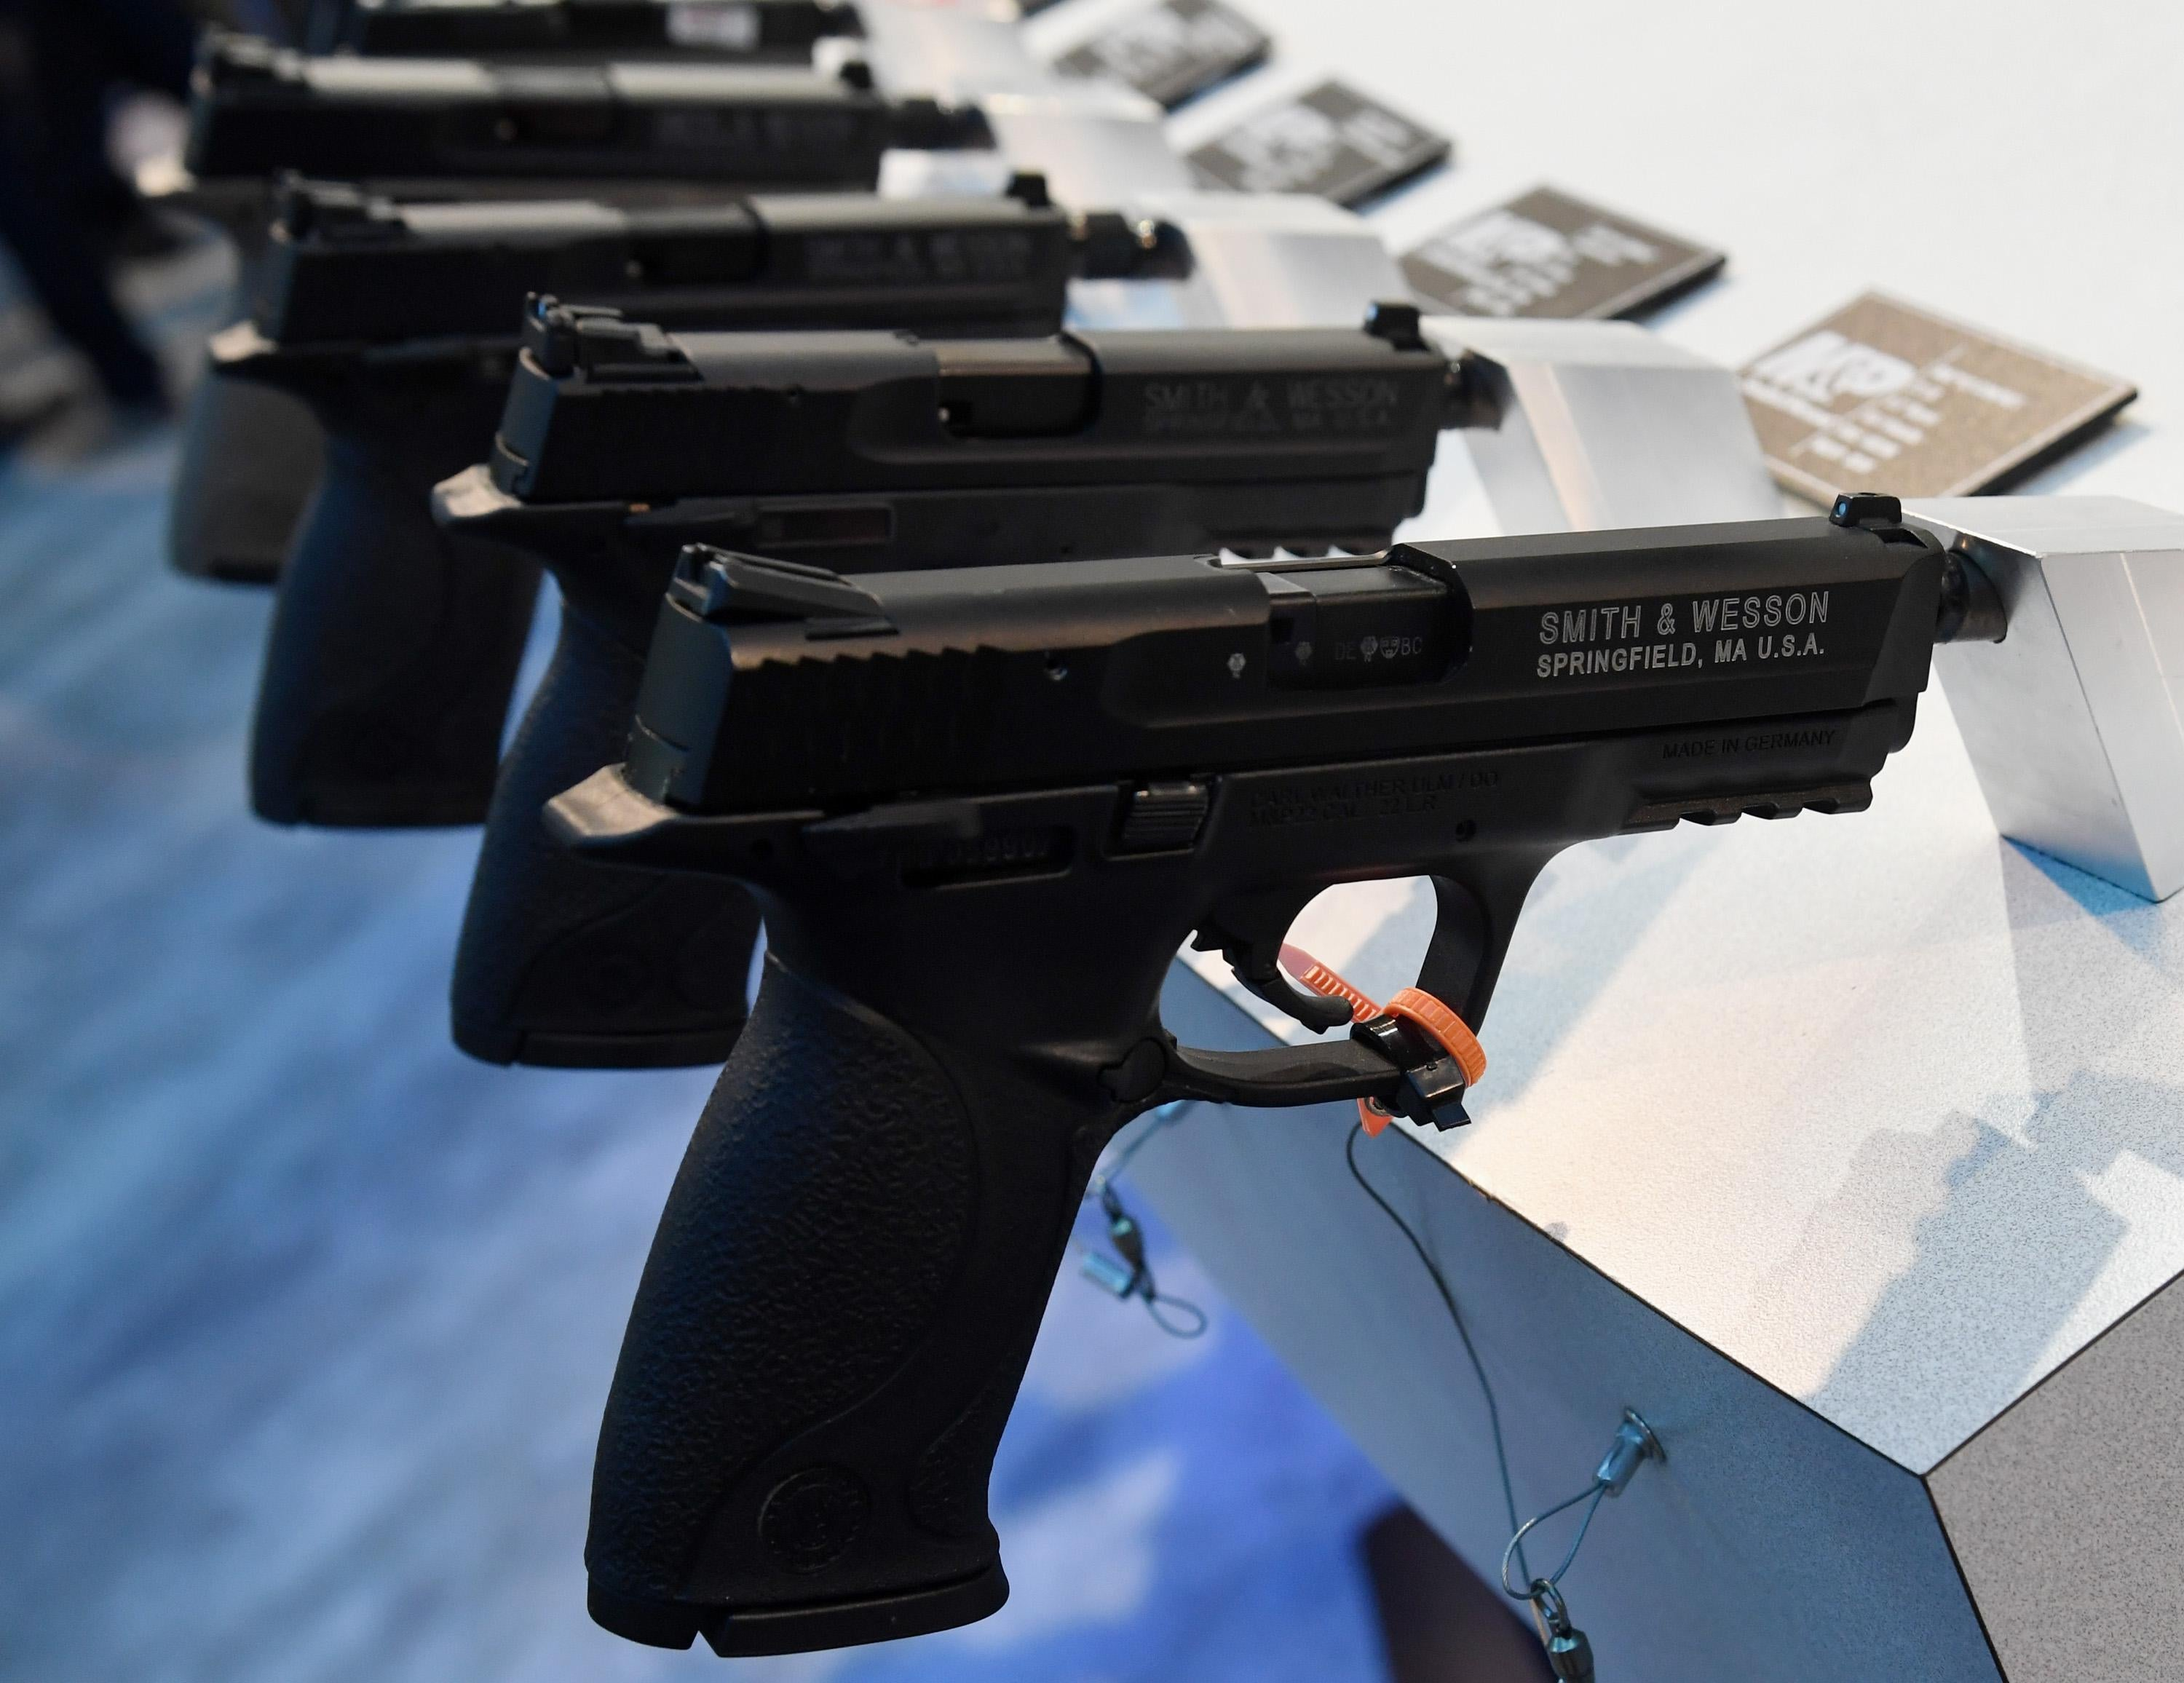 LAS VEGAS, NV - JANUARY 23:  Handguns are displayed at the Smith & Wesson booth at the 2018 National Shooting Sports Foundation's Shooting, Hunting, Outdoor Trade (SHOT) Show at the Sands Expo and Convention Center on January 23, 2018 in Las Vegas, Nevada. The SHOT Show, the world's largest annual trade show for shooting, hunting and law enforcement professionals, runs through January 26 and is expected to feature about 1,600 exhibitors showing off their latest products and services to more than 60,000 attendees.  (Photo by Ethan Miller/Getty Images)